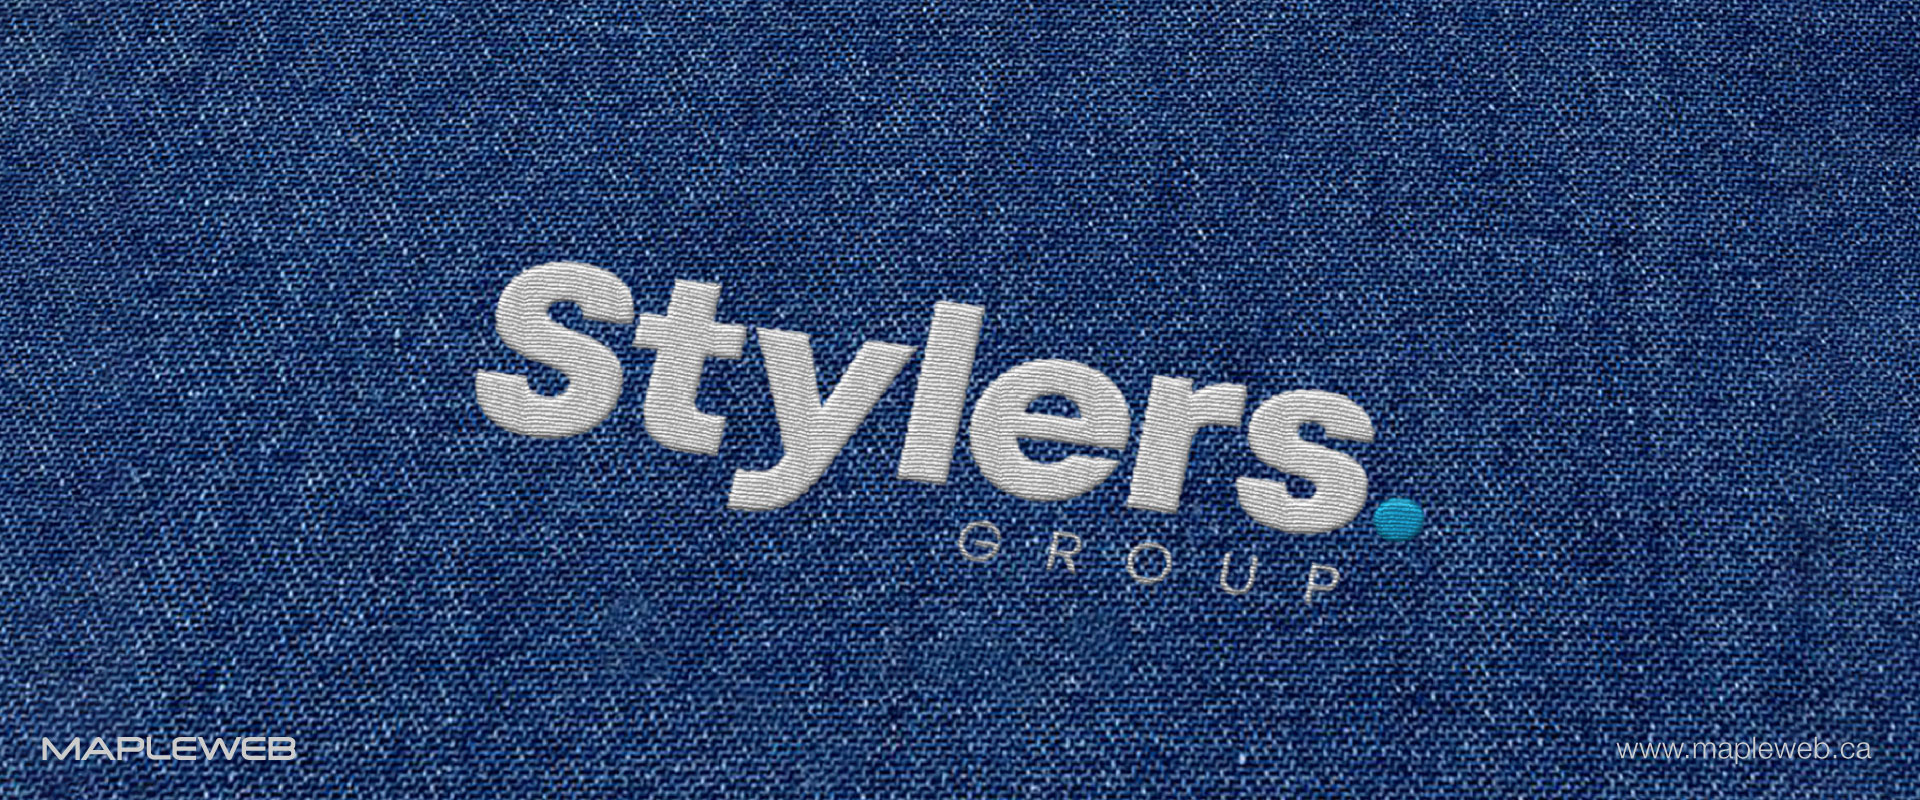 stylers-group-brand-logo-design-by-mapleweb-vancouver-canada-embroidery-mock